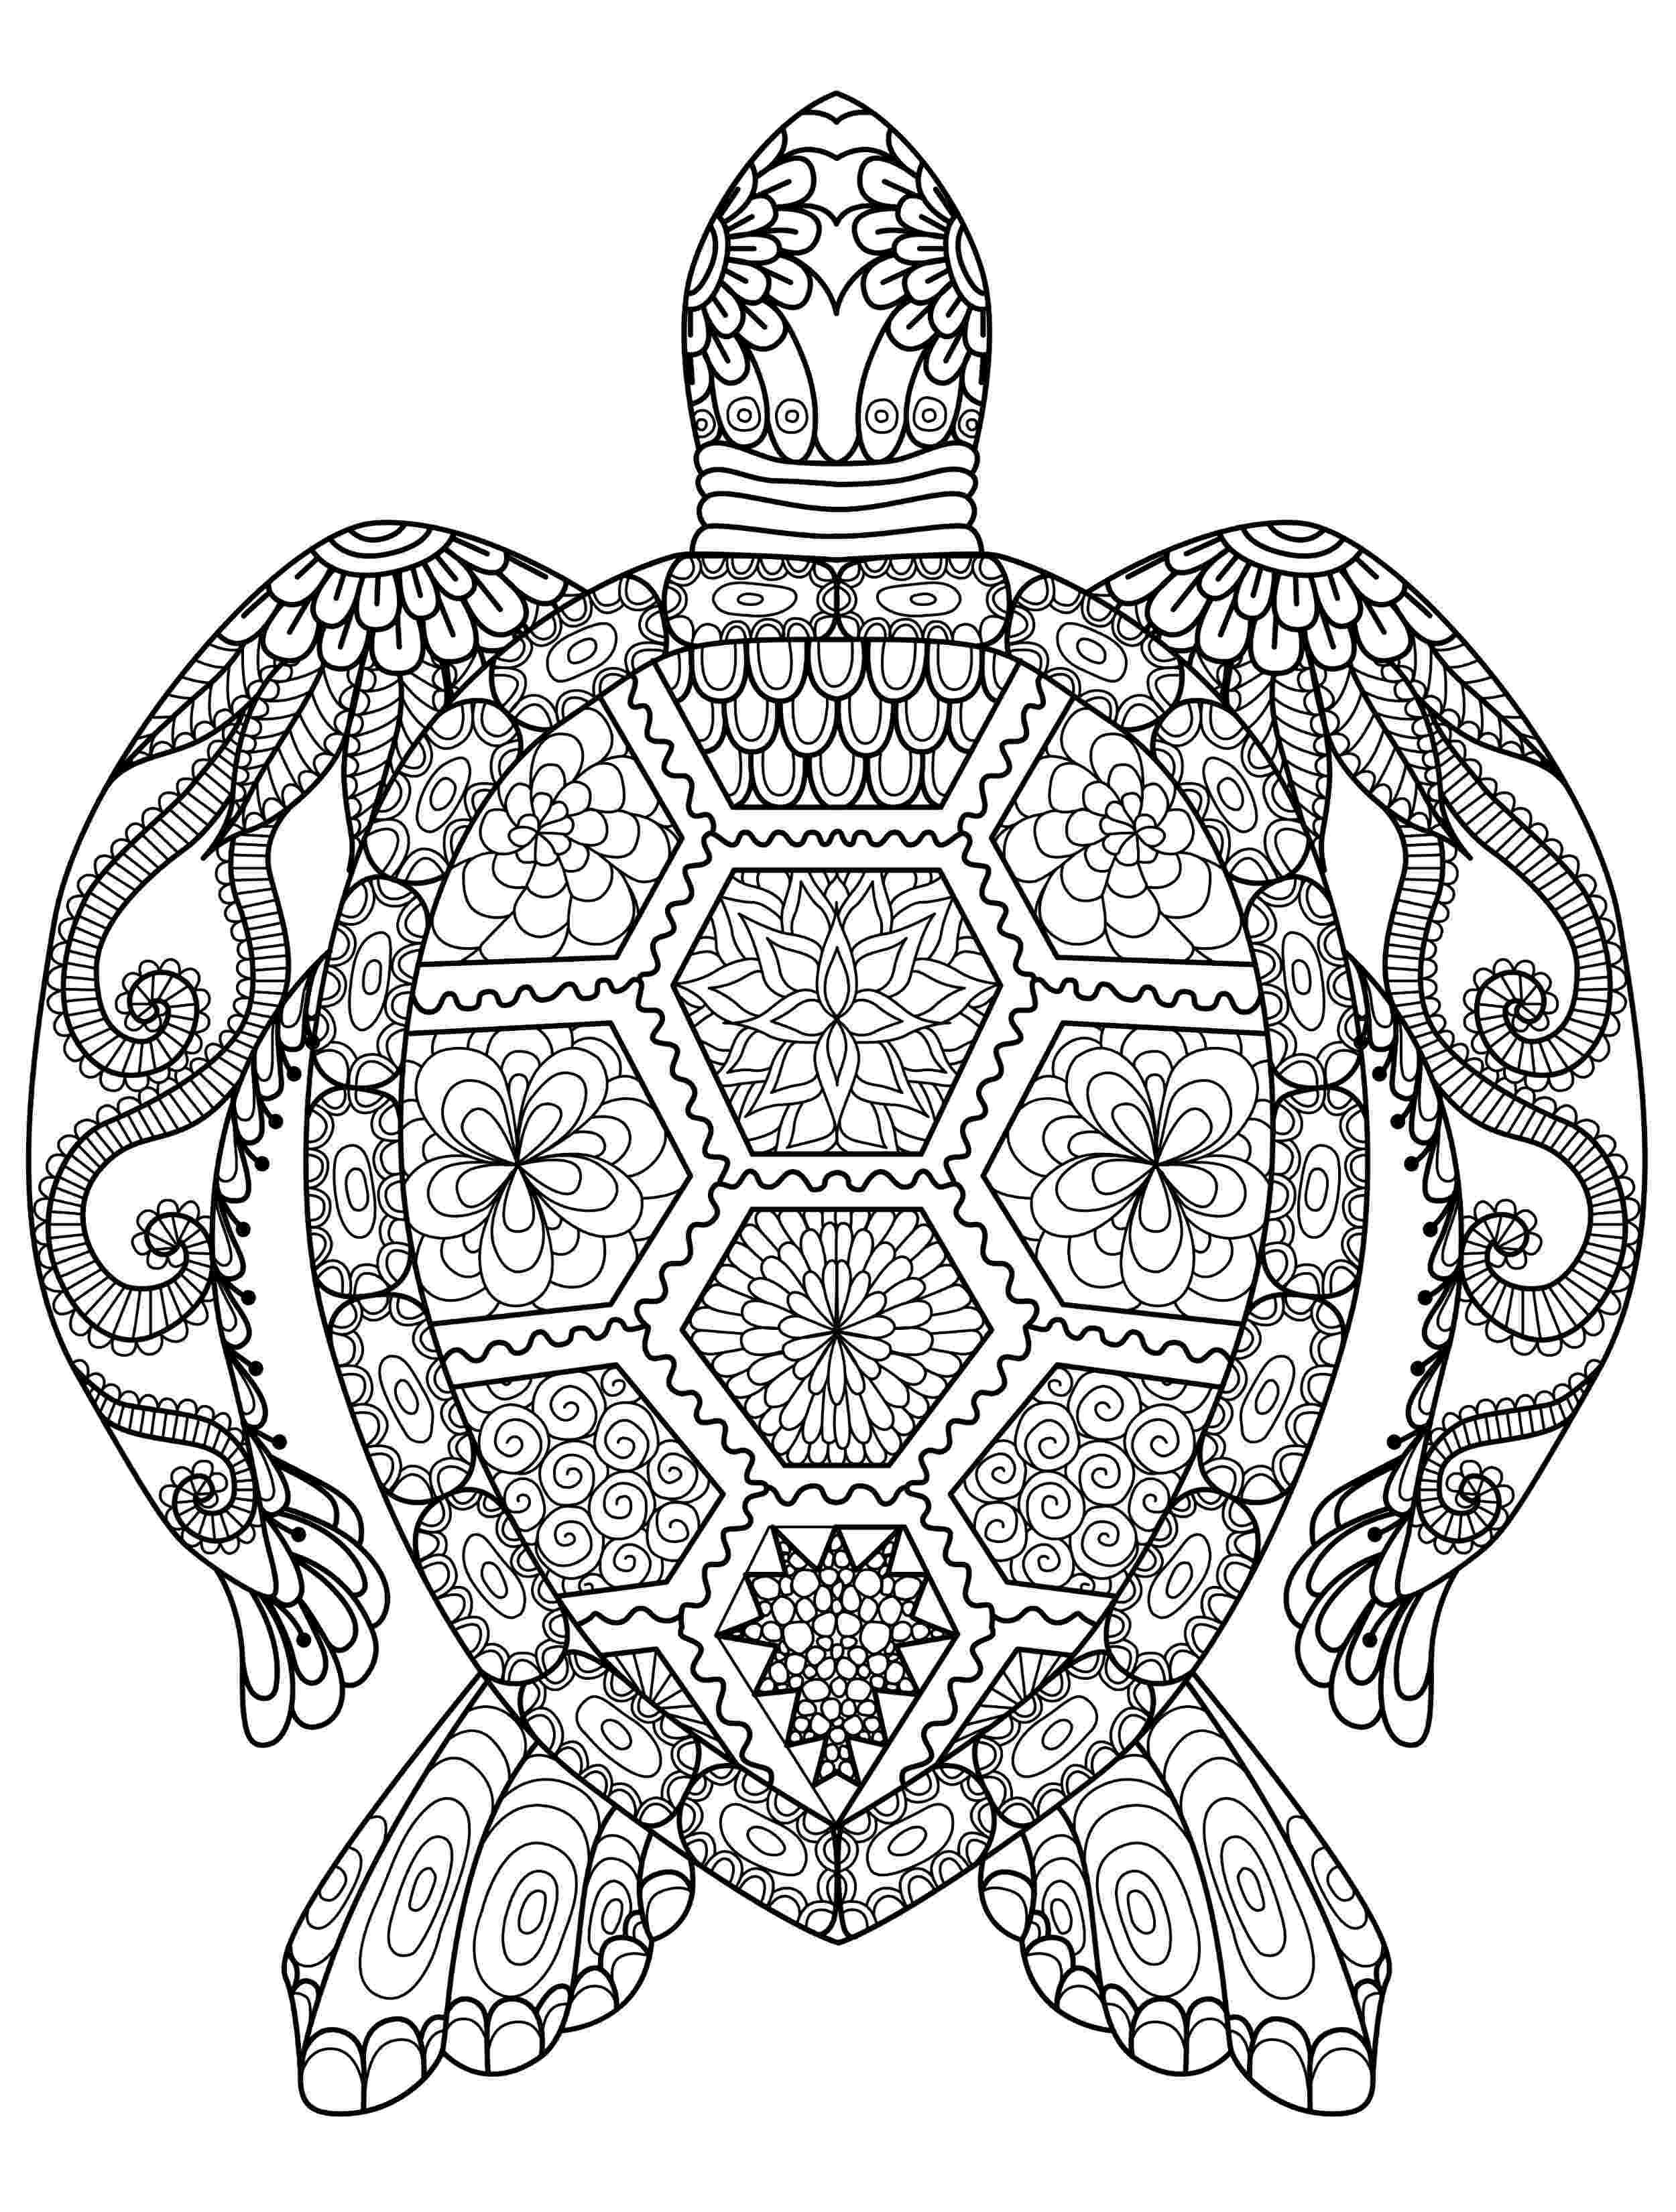 animal coloring book for adults animal coloring pages for adults best coloring pages for coloring book animal adults for